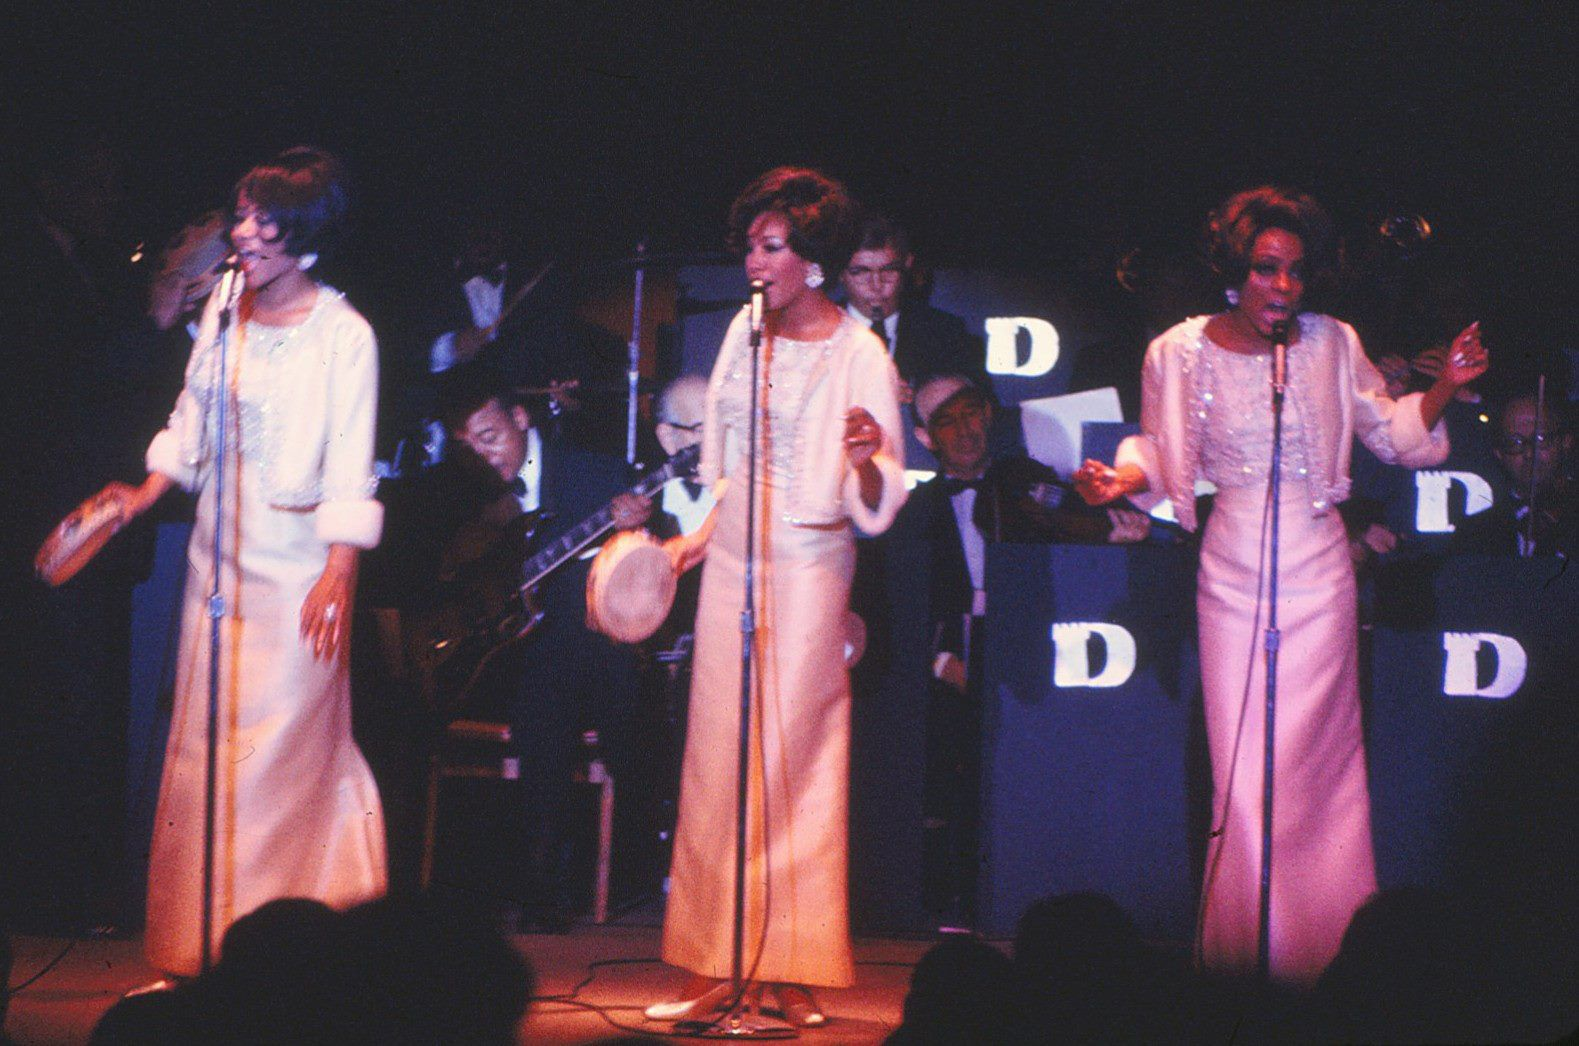 Diana ross the supremes at the deauville hotel miami